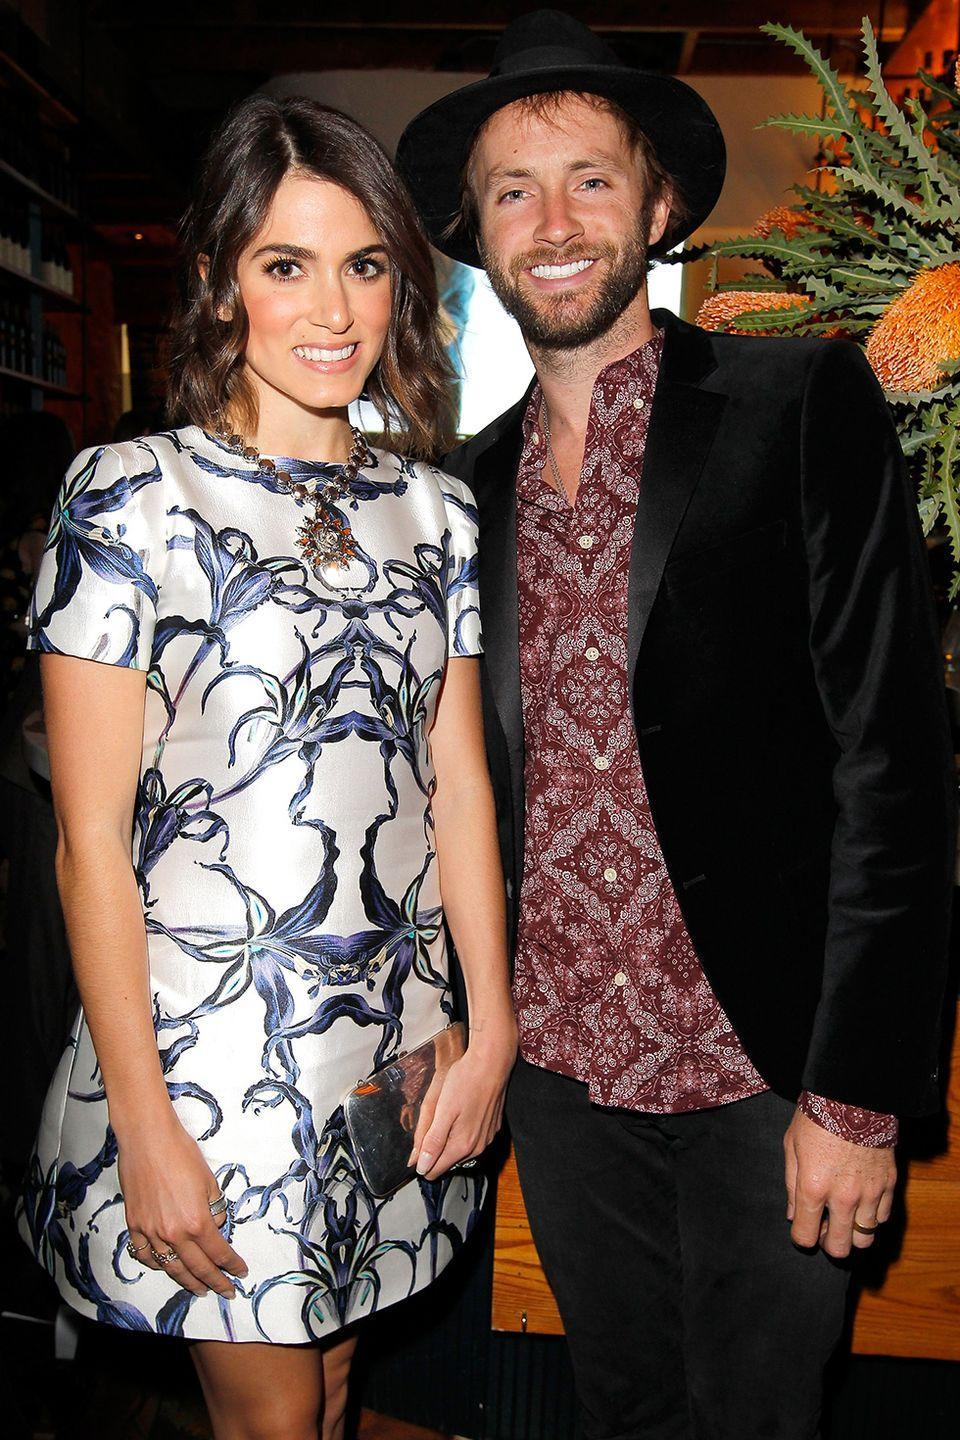 "<p>The<em> Twilight</em> star appears twice on this list! She was engaged to <em>American Idol</em> contestant Paul (yeah…Paul who?) after a <a class=""link rapid-noclick-resp"" href=""https://abc7.com/archive/8172546/"" rel=""nofollow noopener"" target=""_blank"" data-ylk=""slk:few months of dating"">few months of dating</a>.</p>"